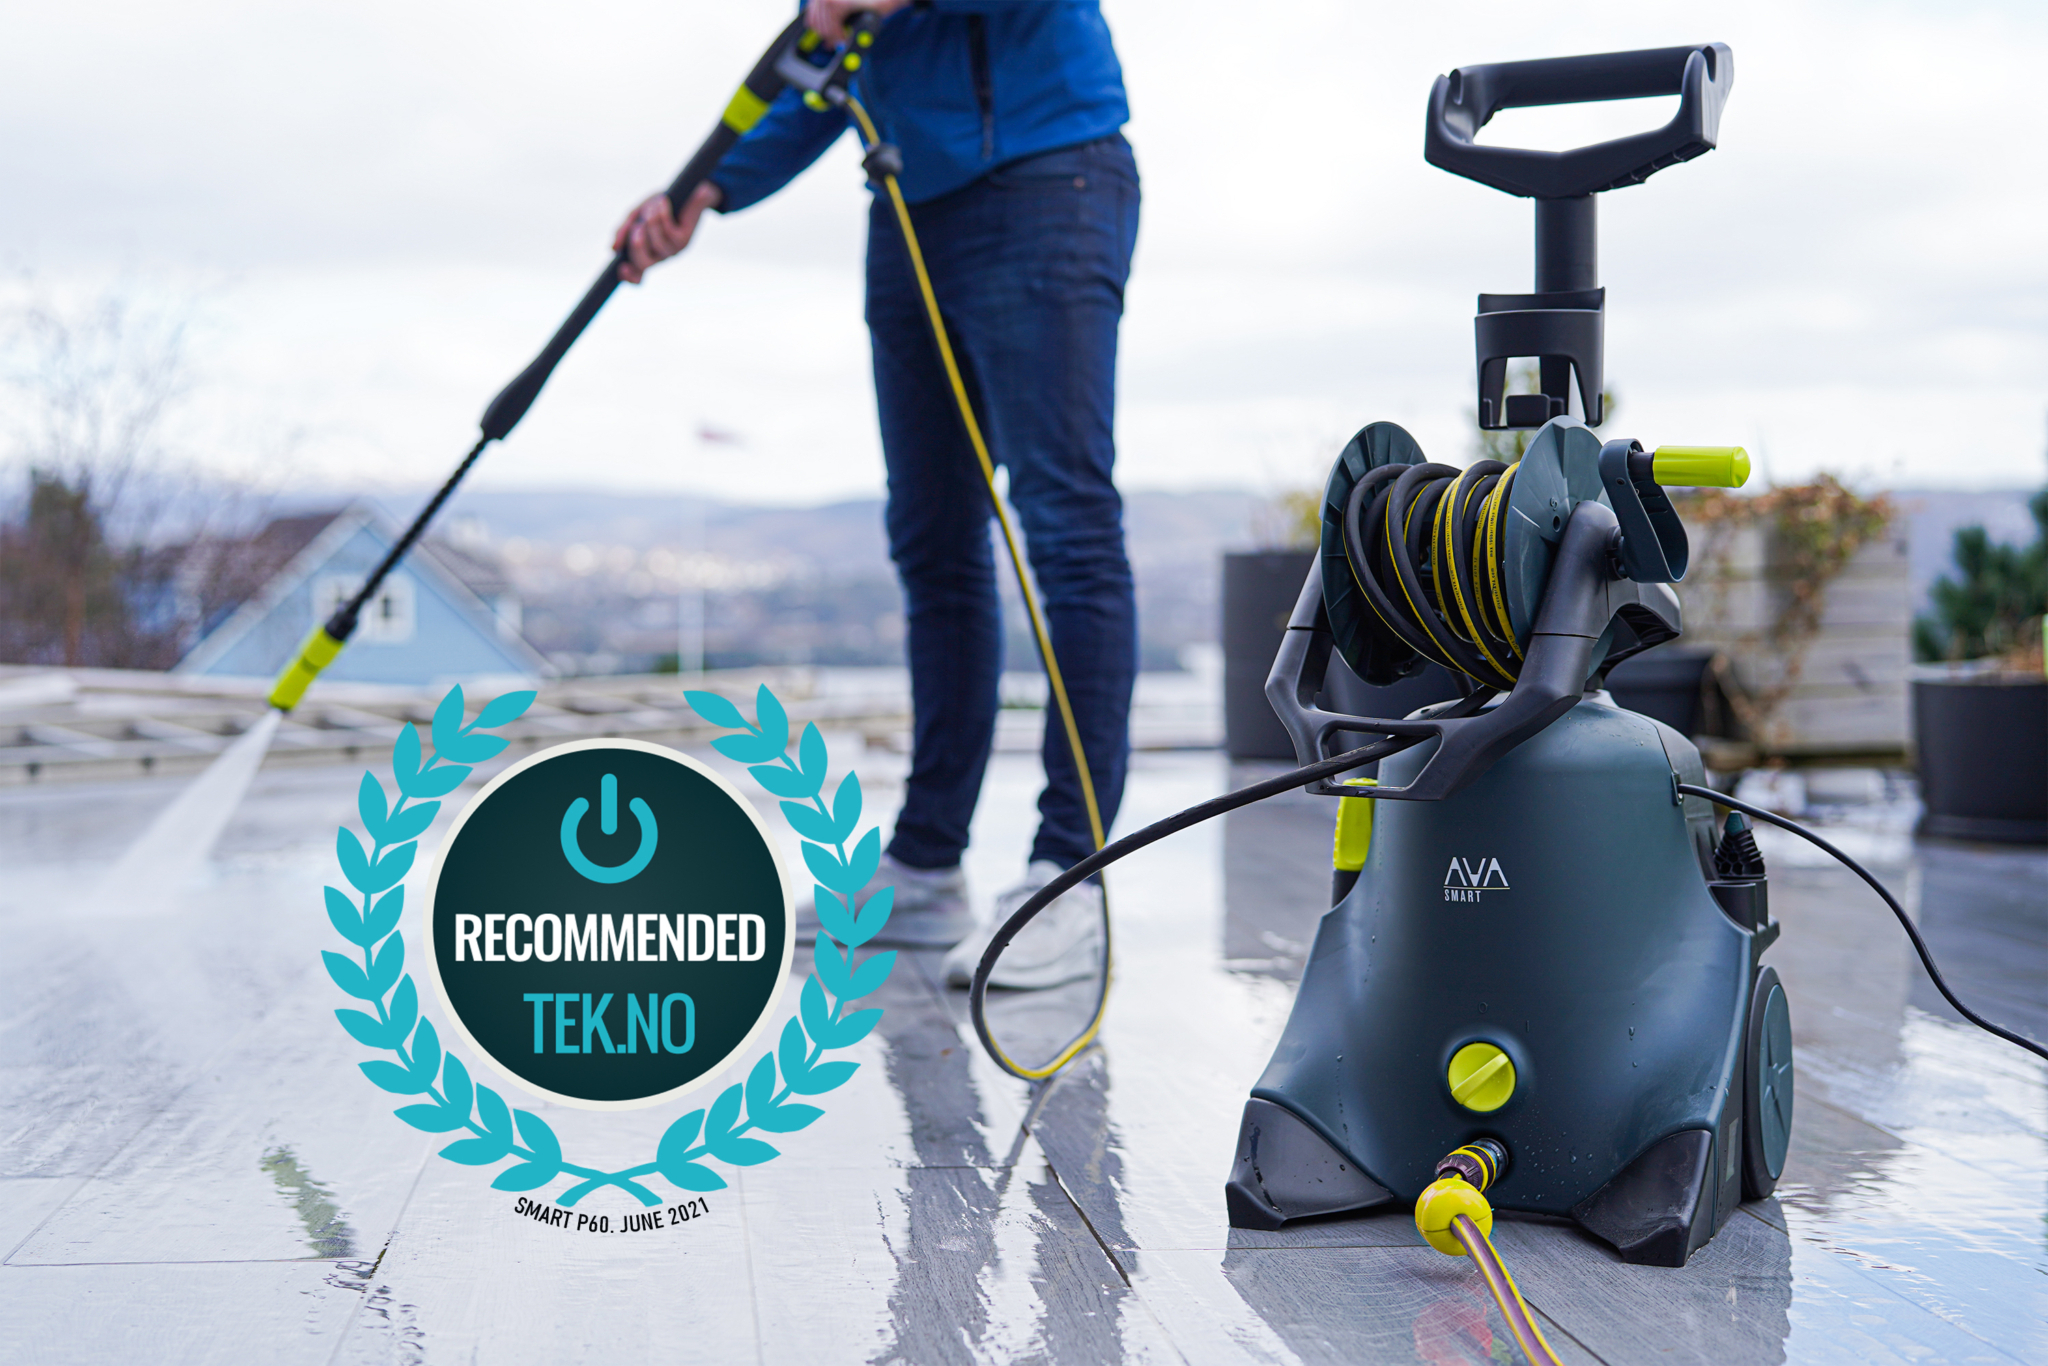 Smart P60 recommended by TEK.no